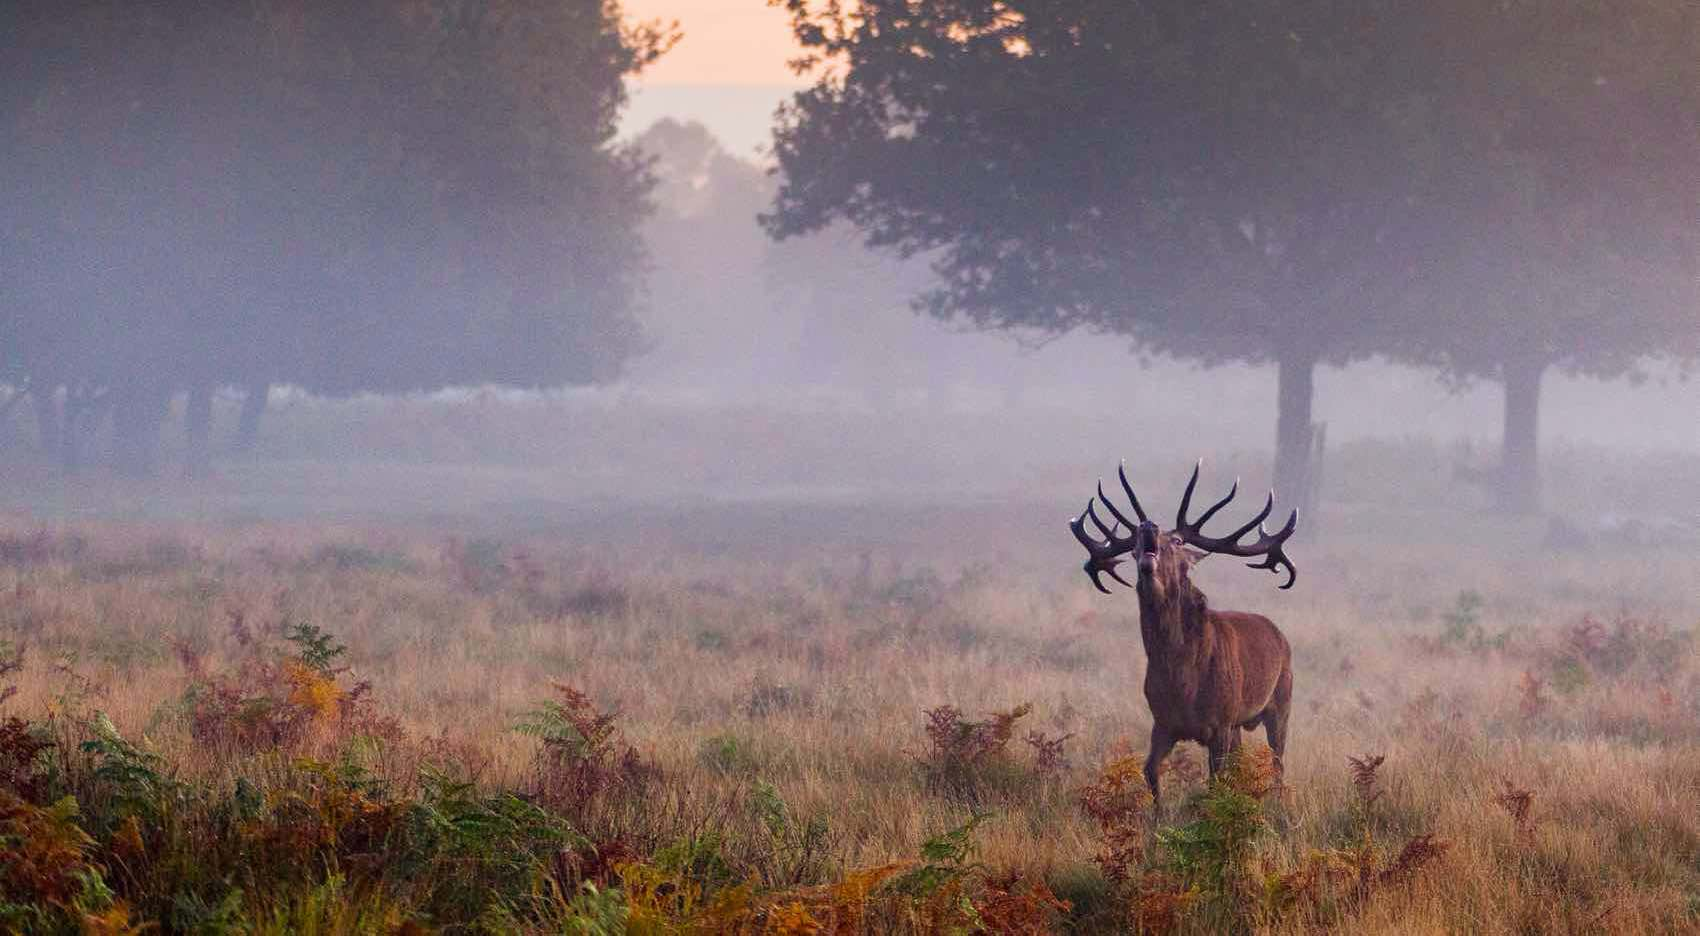 Richmond Park - The biggest Royal Park in London remains largely unspoiled